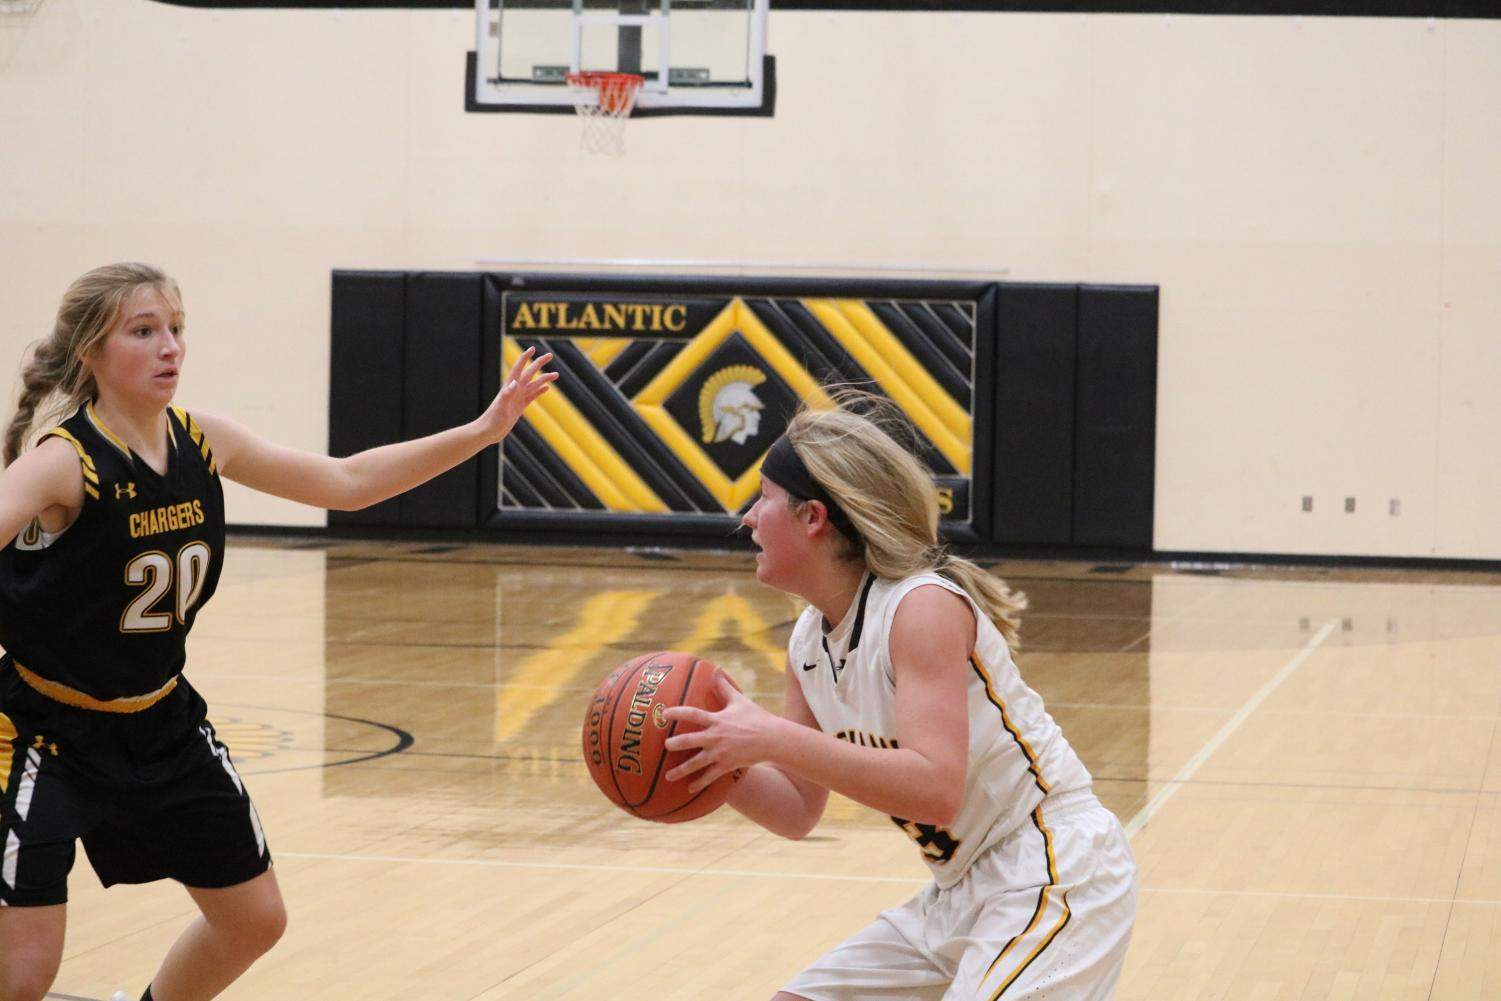 Senior Baylee Newell grips the ball on offense. Against the Cyclones, Newell netted two points and had five steals.